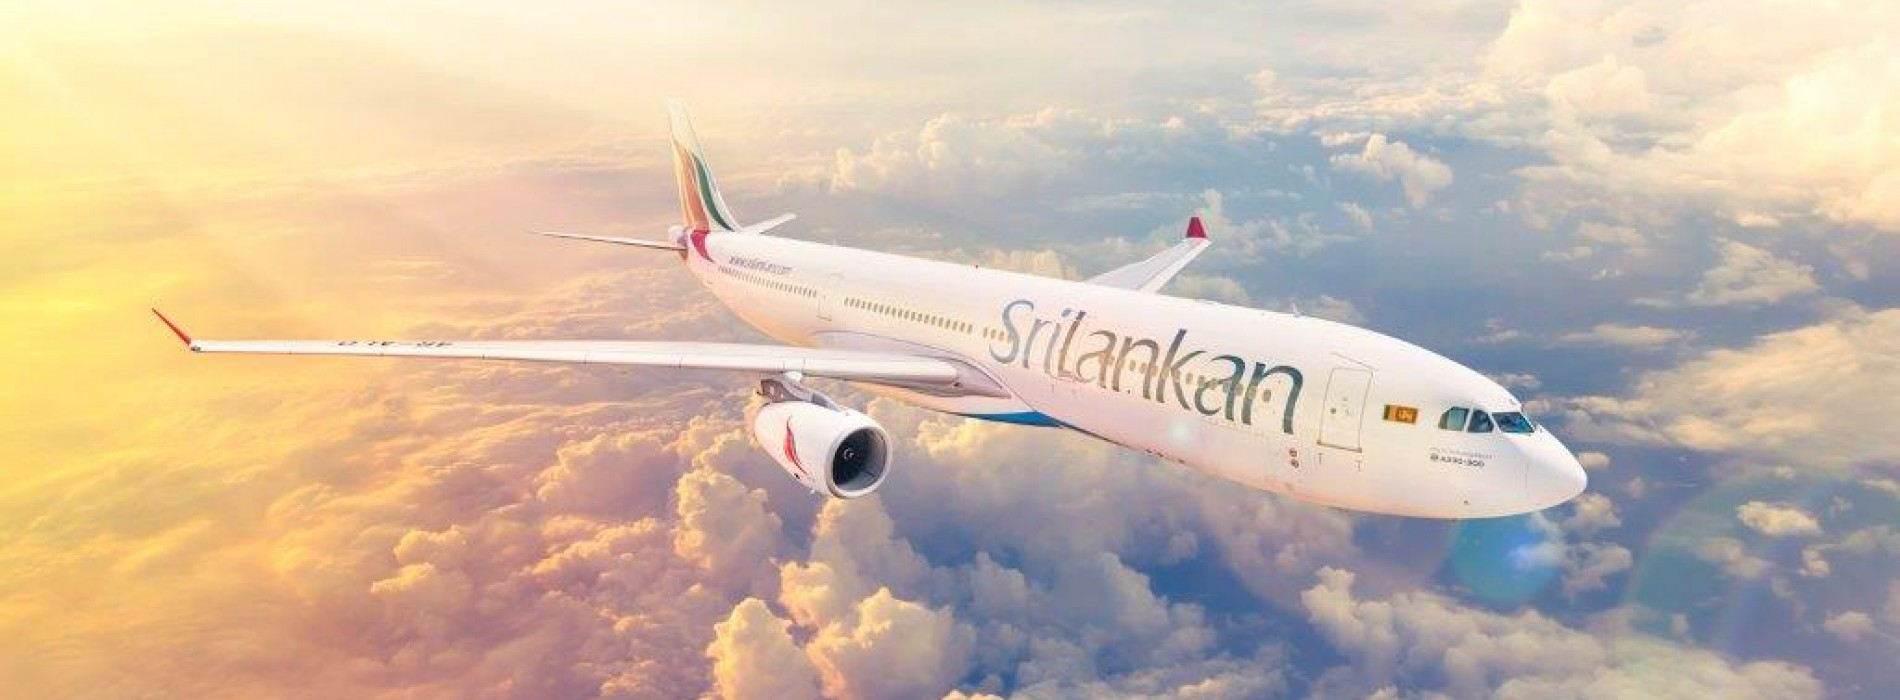 SriLankan Airlines uplifted largest vaccine consignment to Sri Lanka